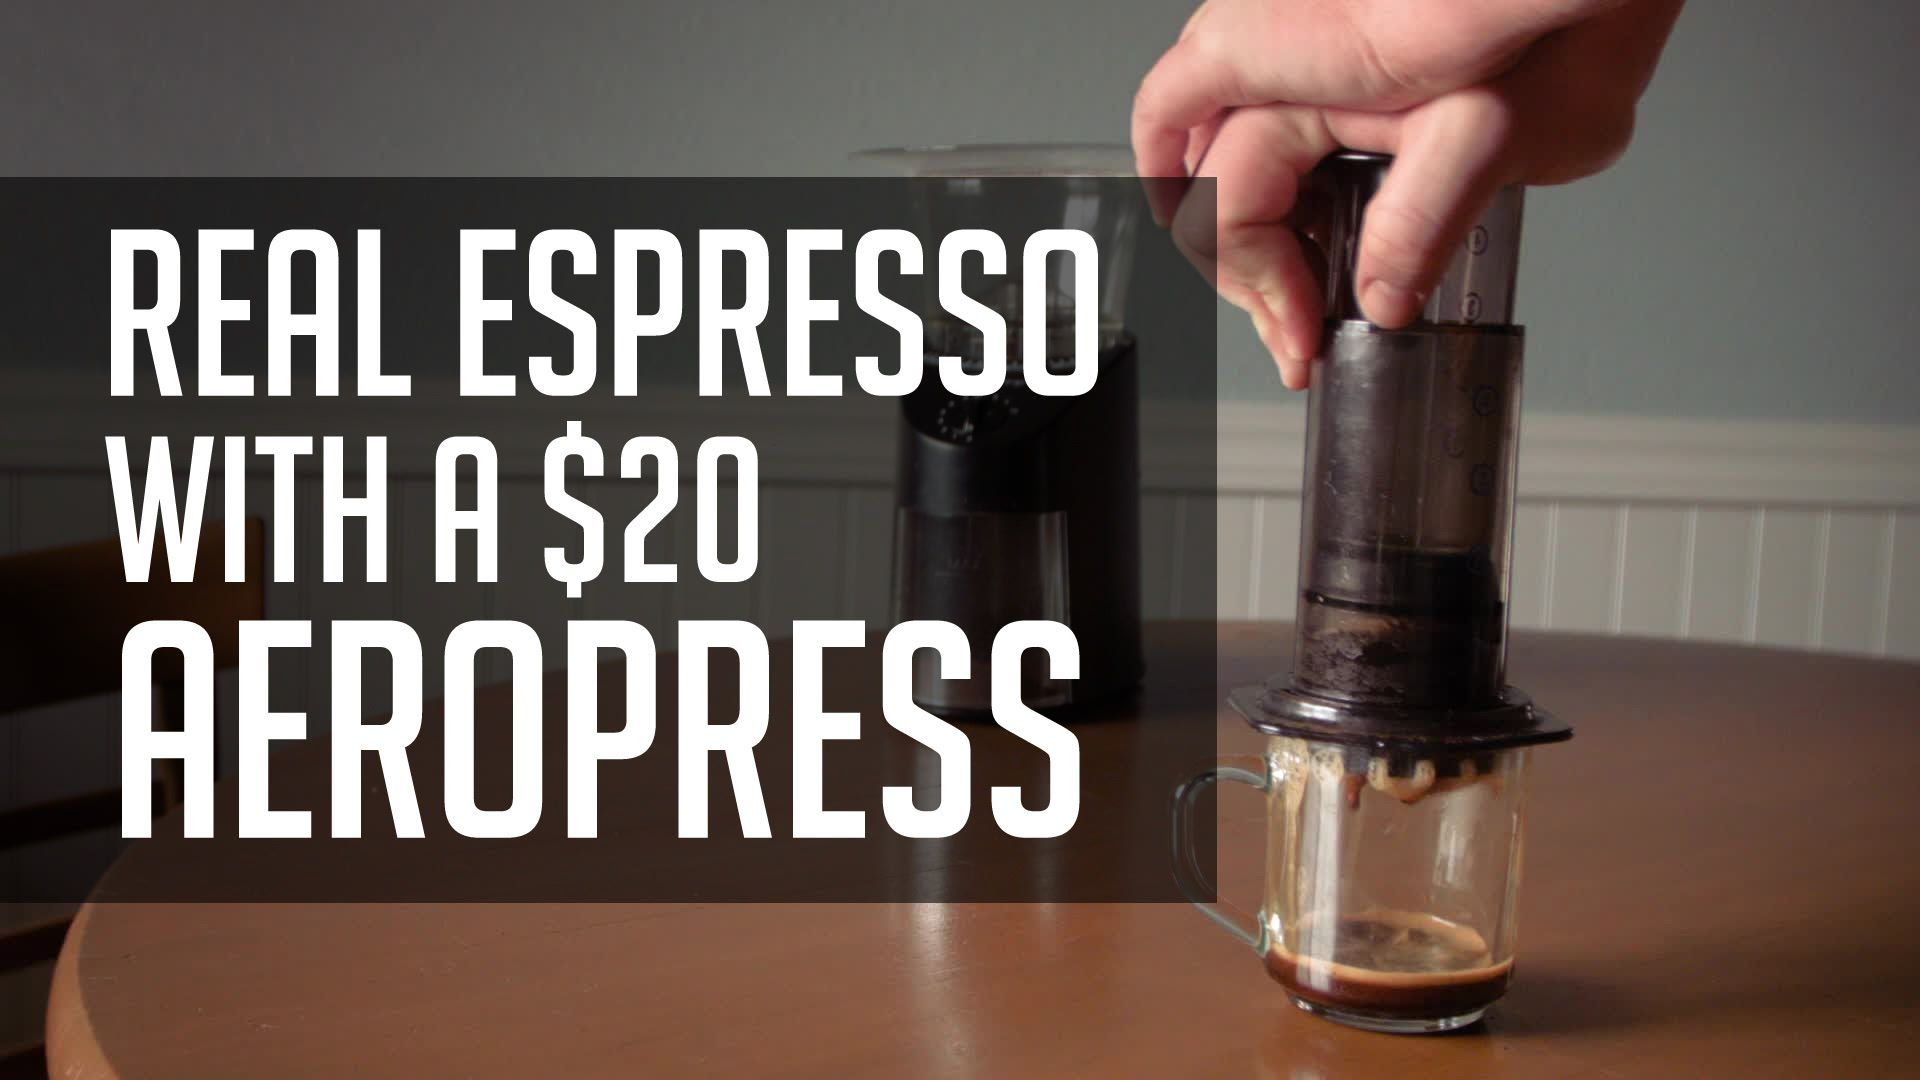 How to Make REAL Espresso With a 20 Aeropress! Tutorial